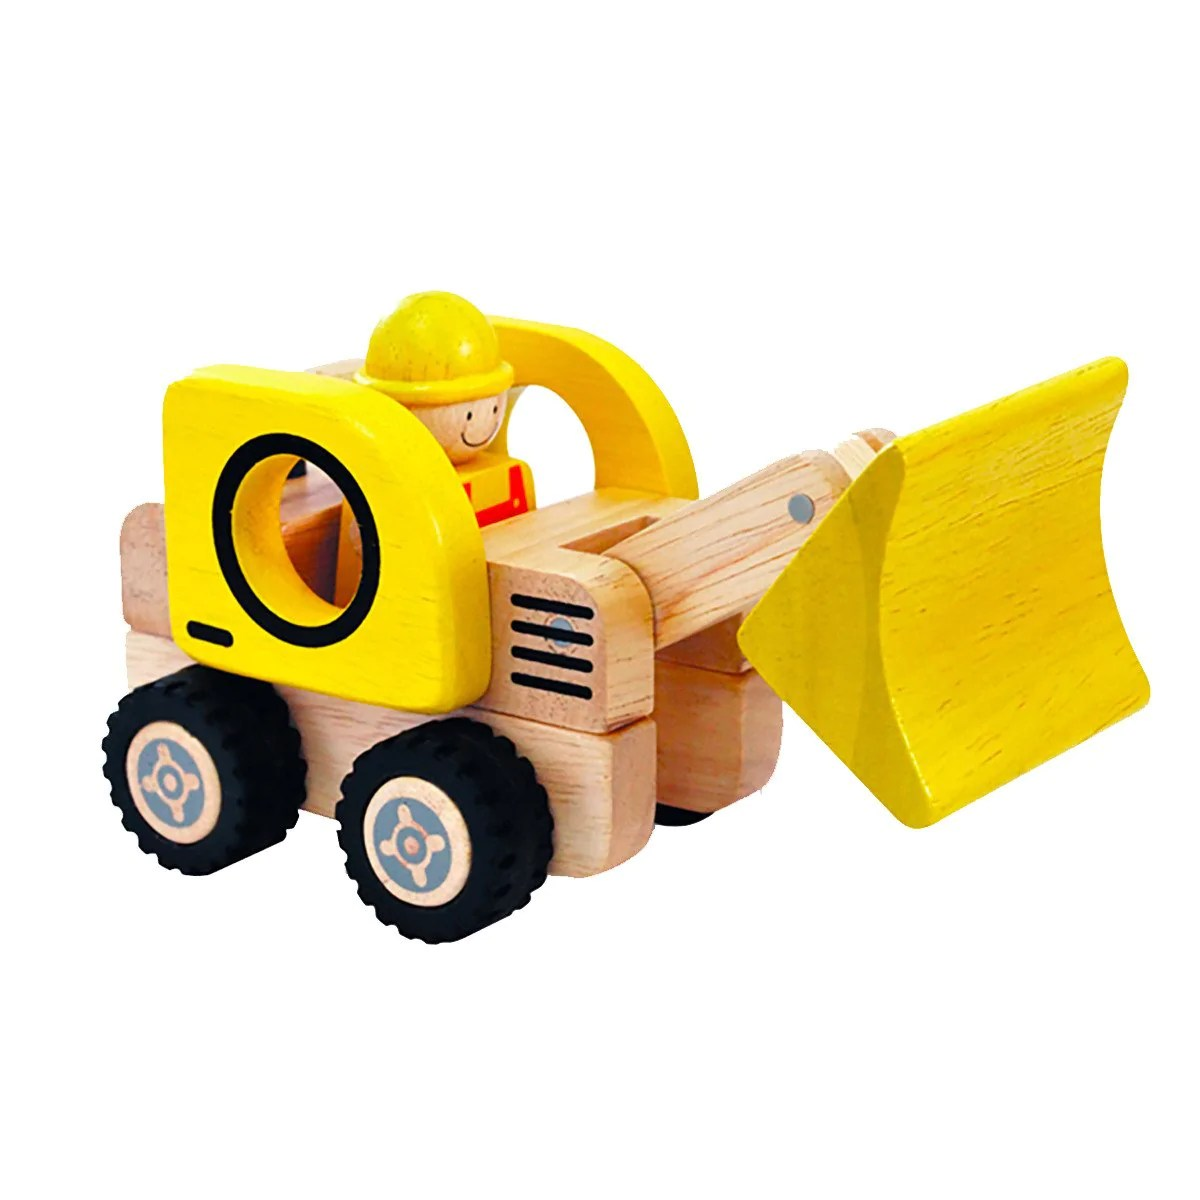 Digger Toy I M Toy Road Vehicles